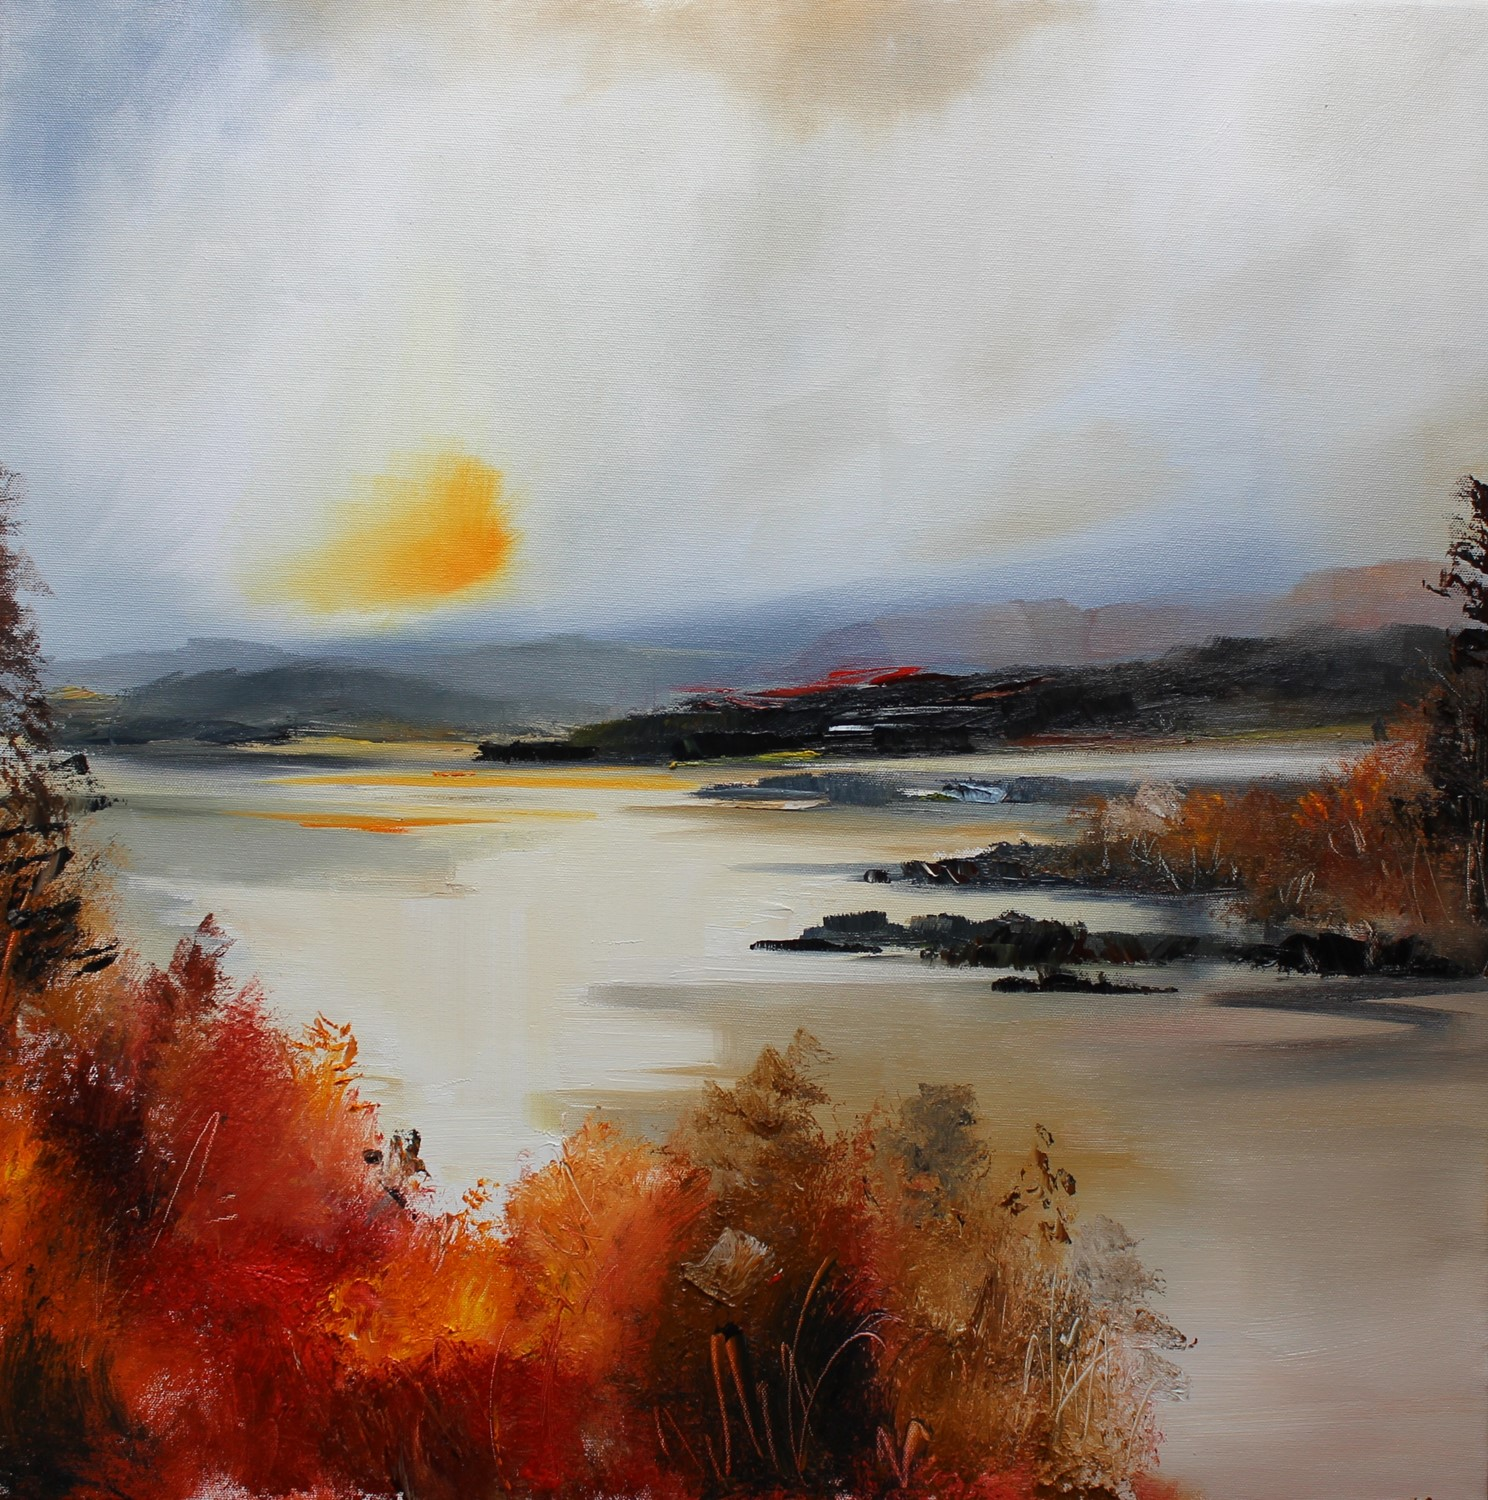 'Autumn By the River' by artist Rosanne Barr